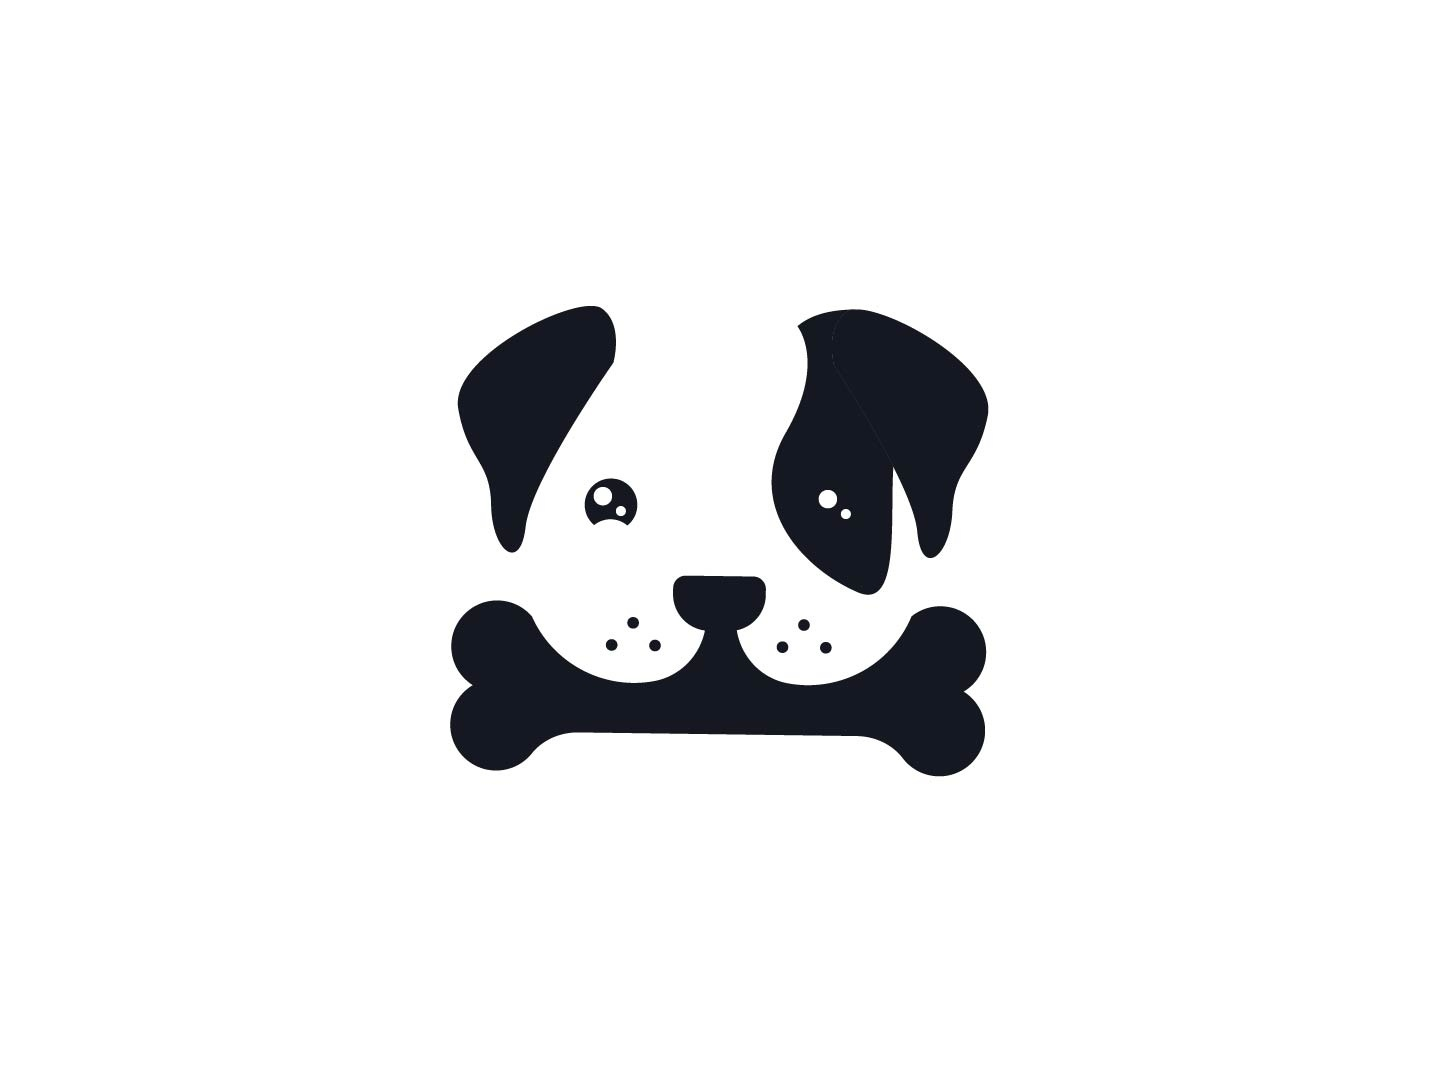 Cute long ears puppy holding a bone bones negativespace creative dog logo minimal bone puppy dog cute